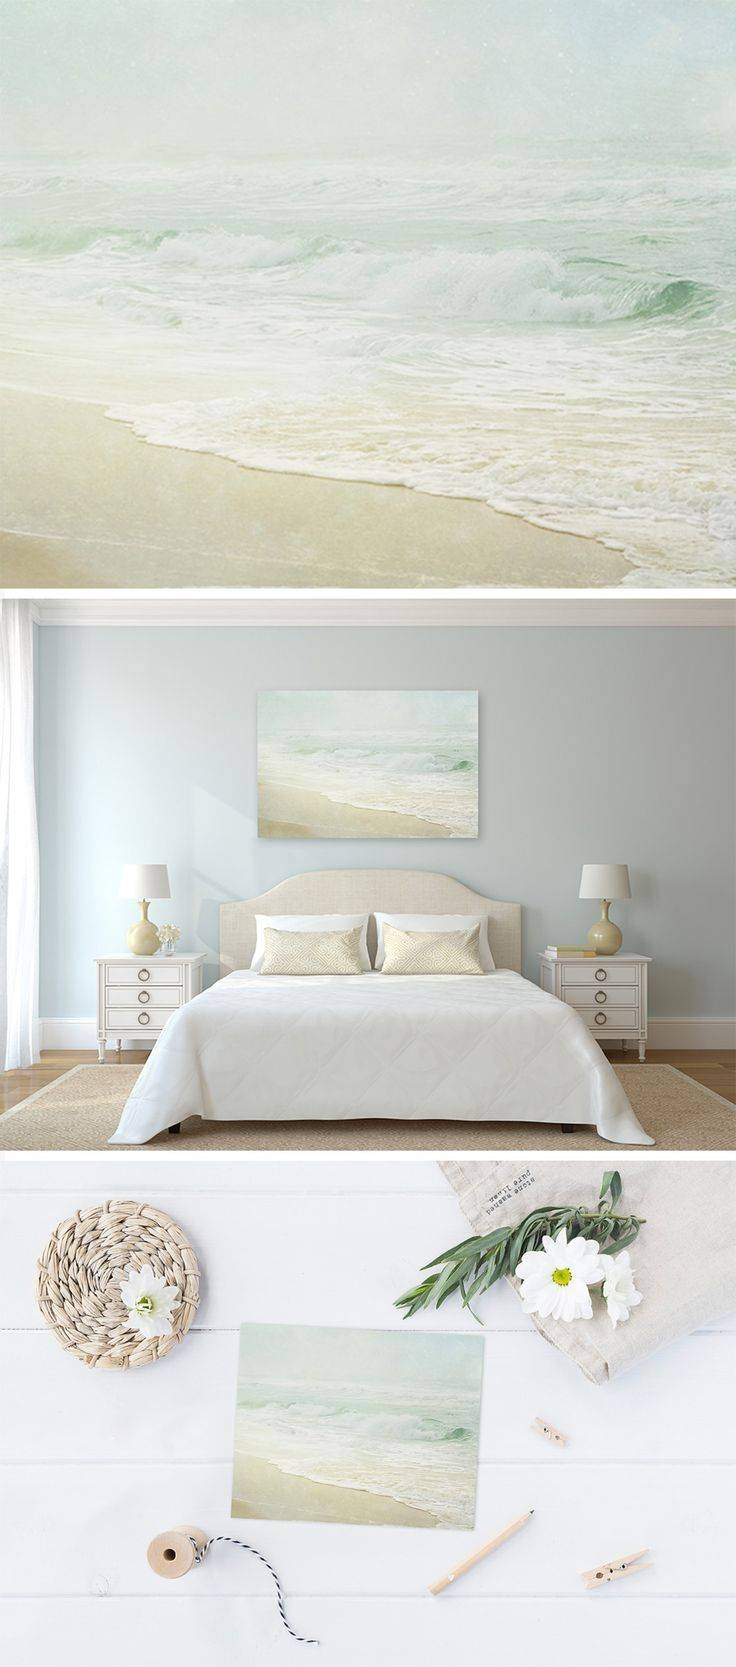 Chic Coastal Wall Art Canvas Crate Barrel Australia Ideas Decor Uk With 2018 Crate Barrel Coastal Wall Art (View 10 of 20)